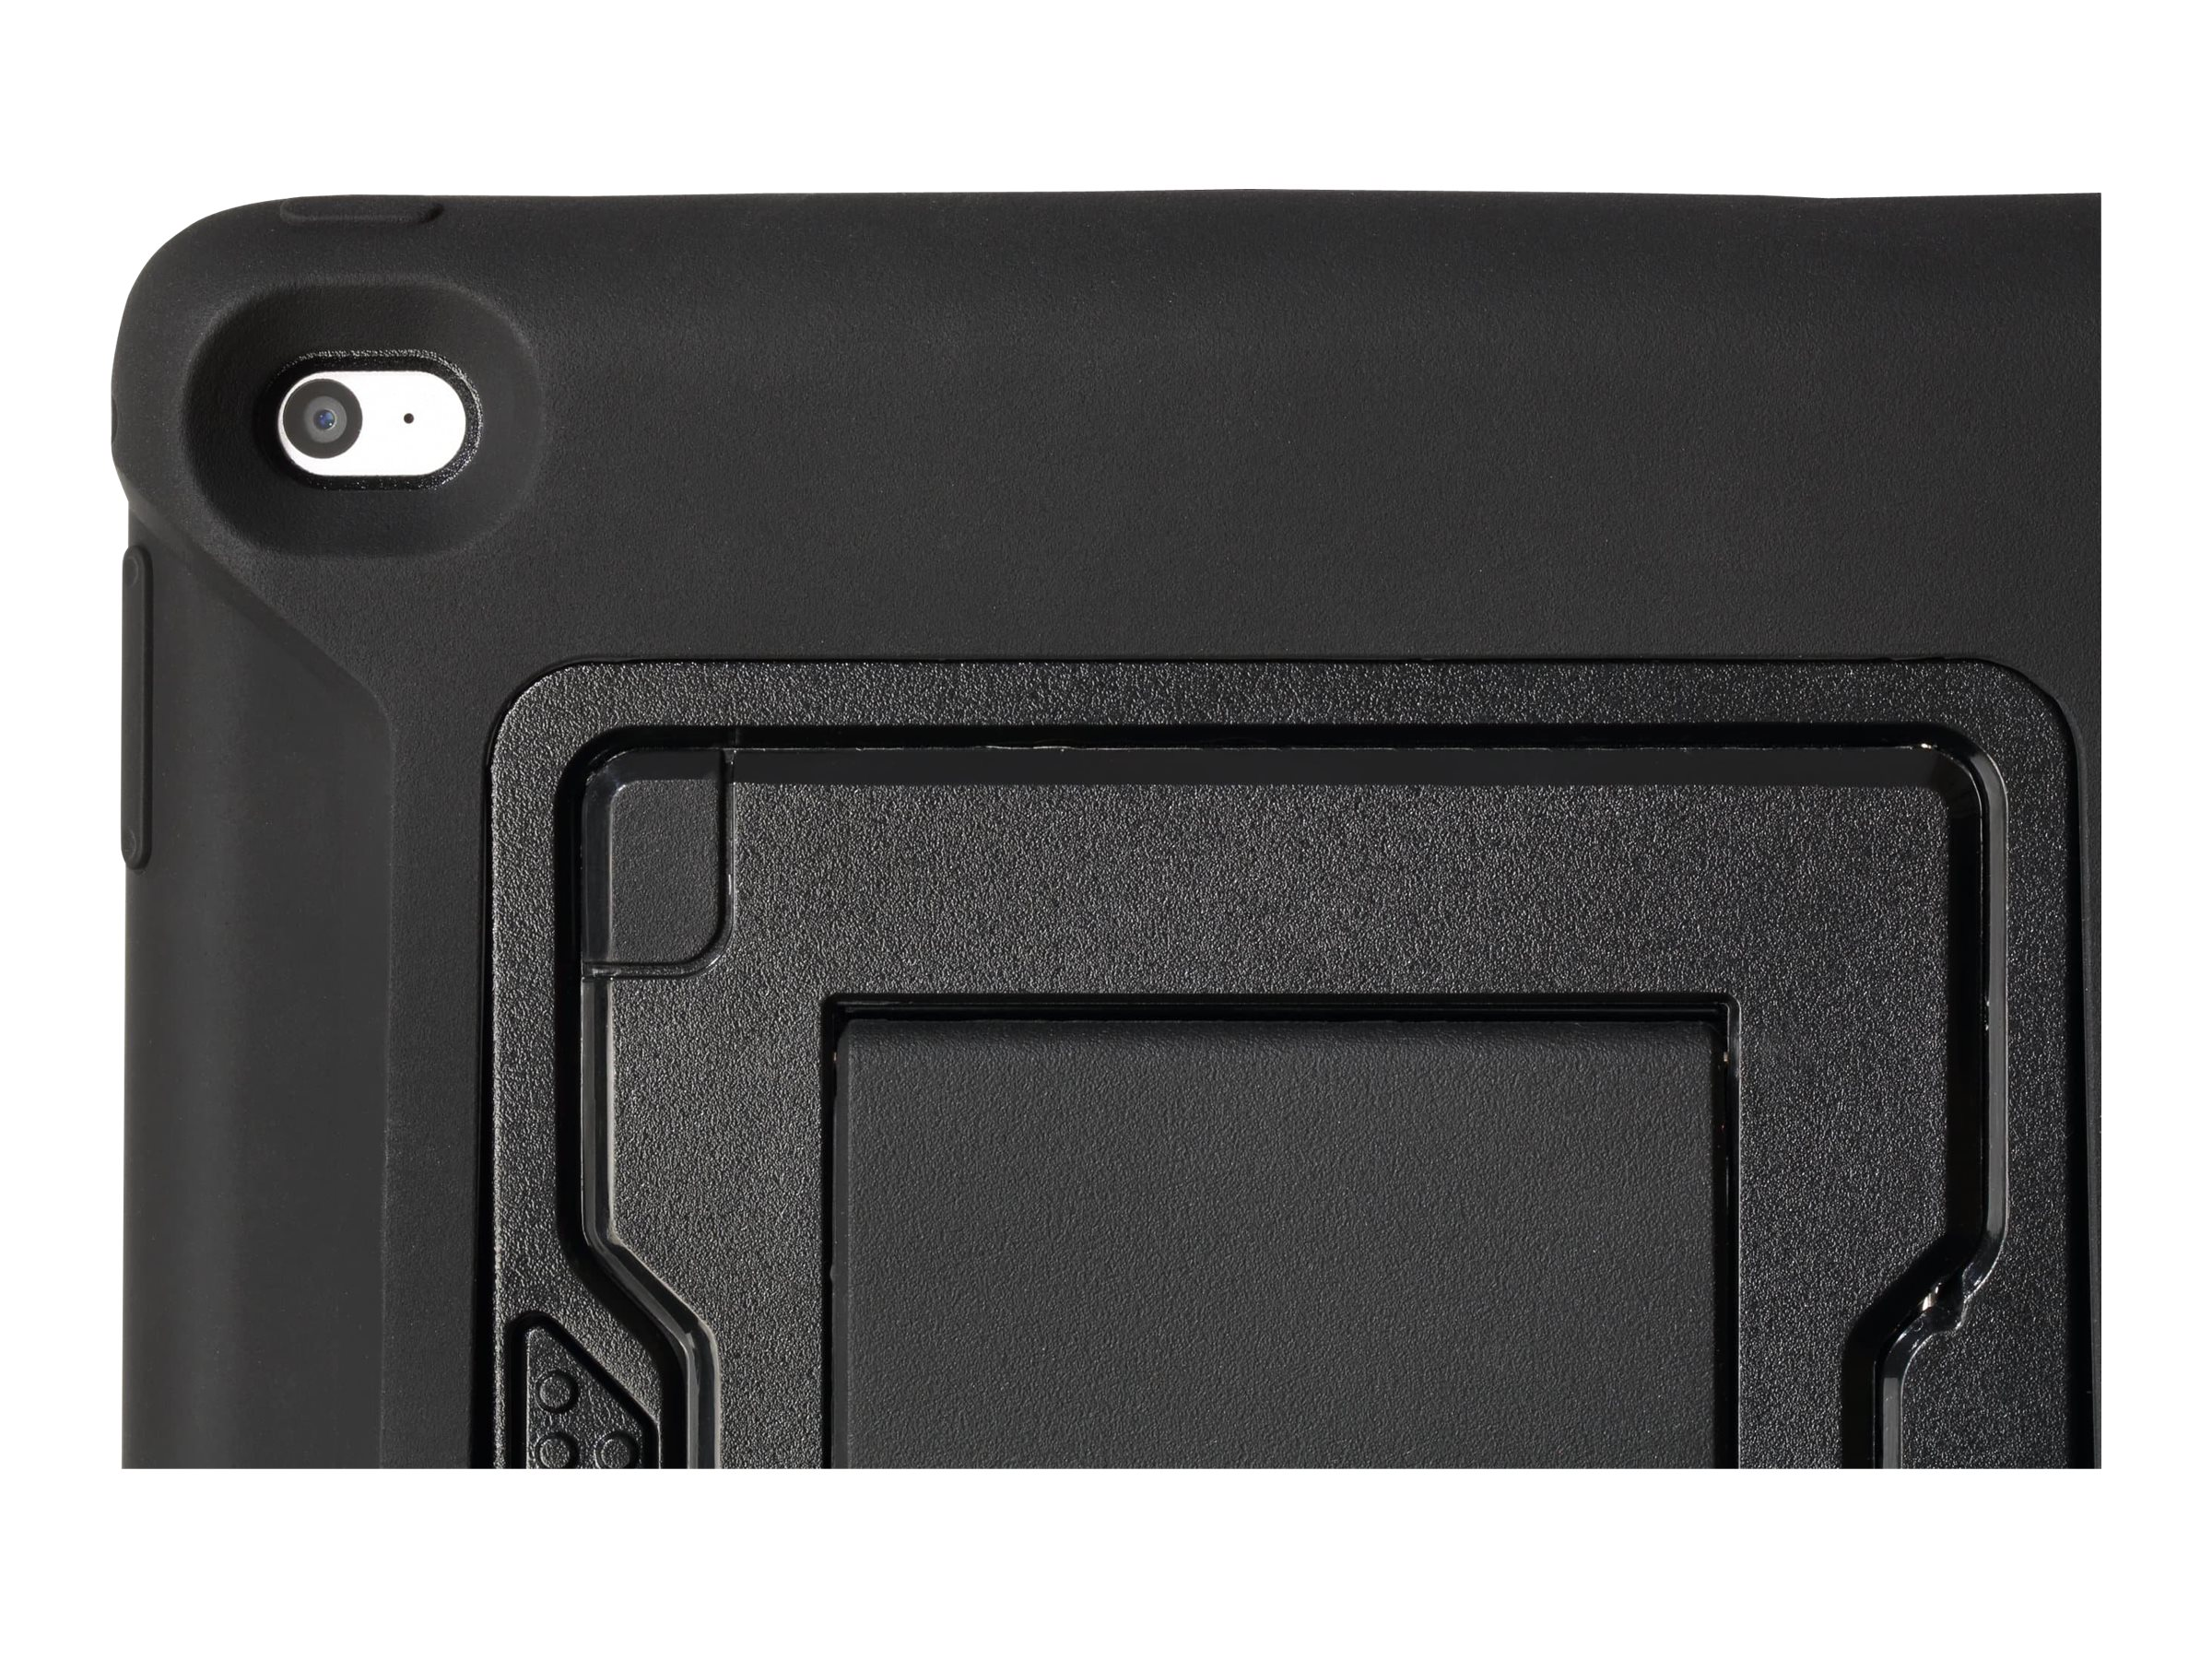 Kensington Blackbelt 2 Rugged Case for iPad Air 2 w  Screen Protector, K97448WW